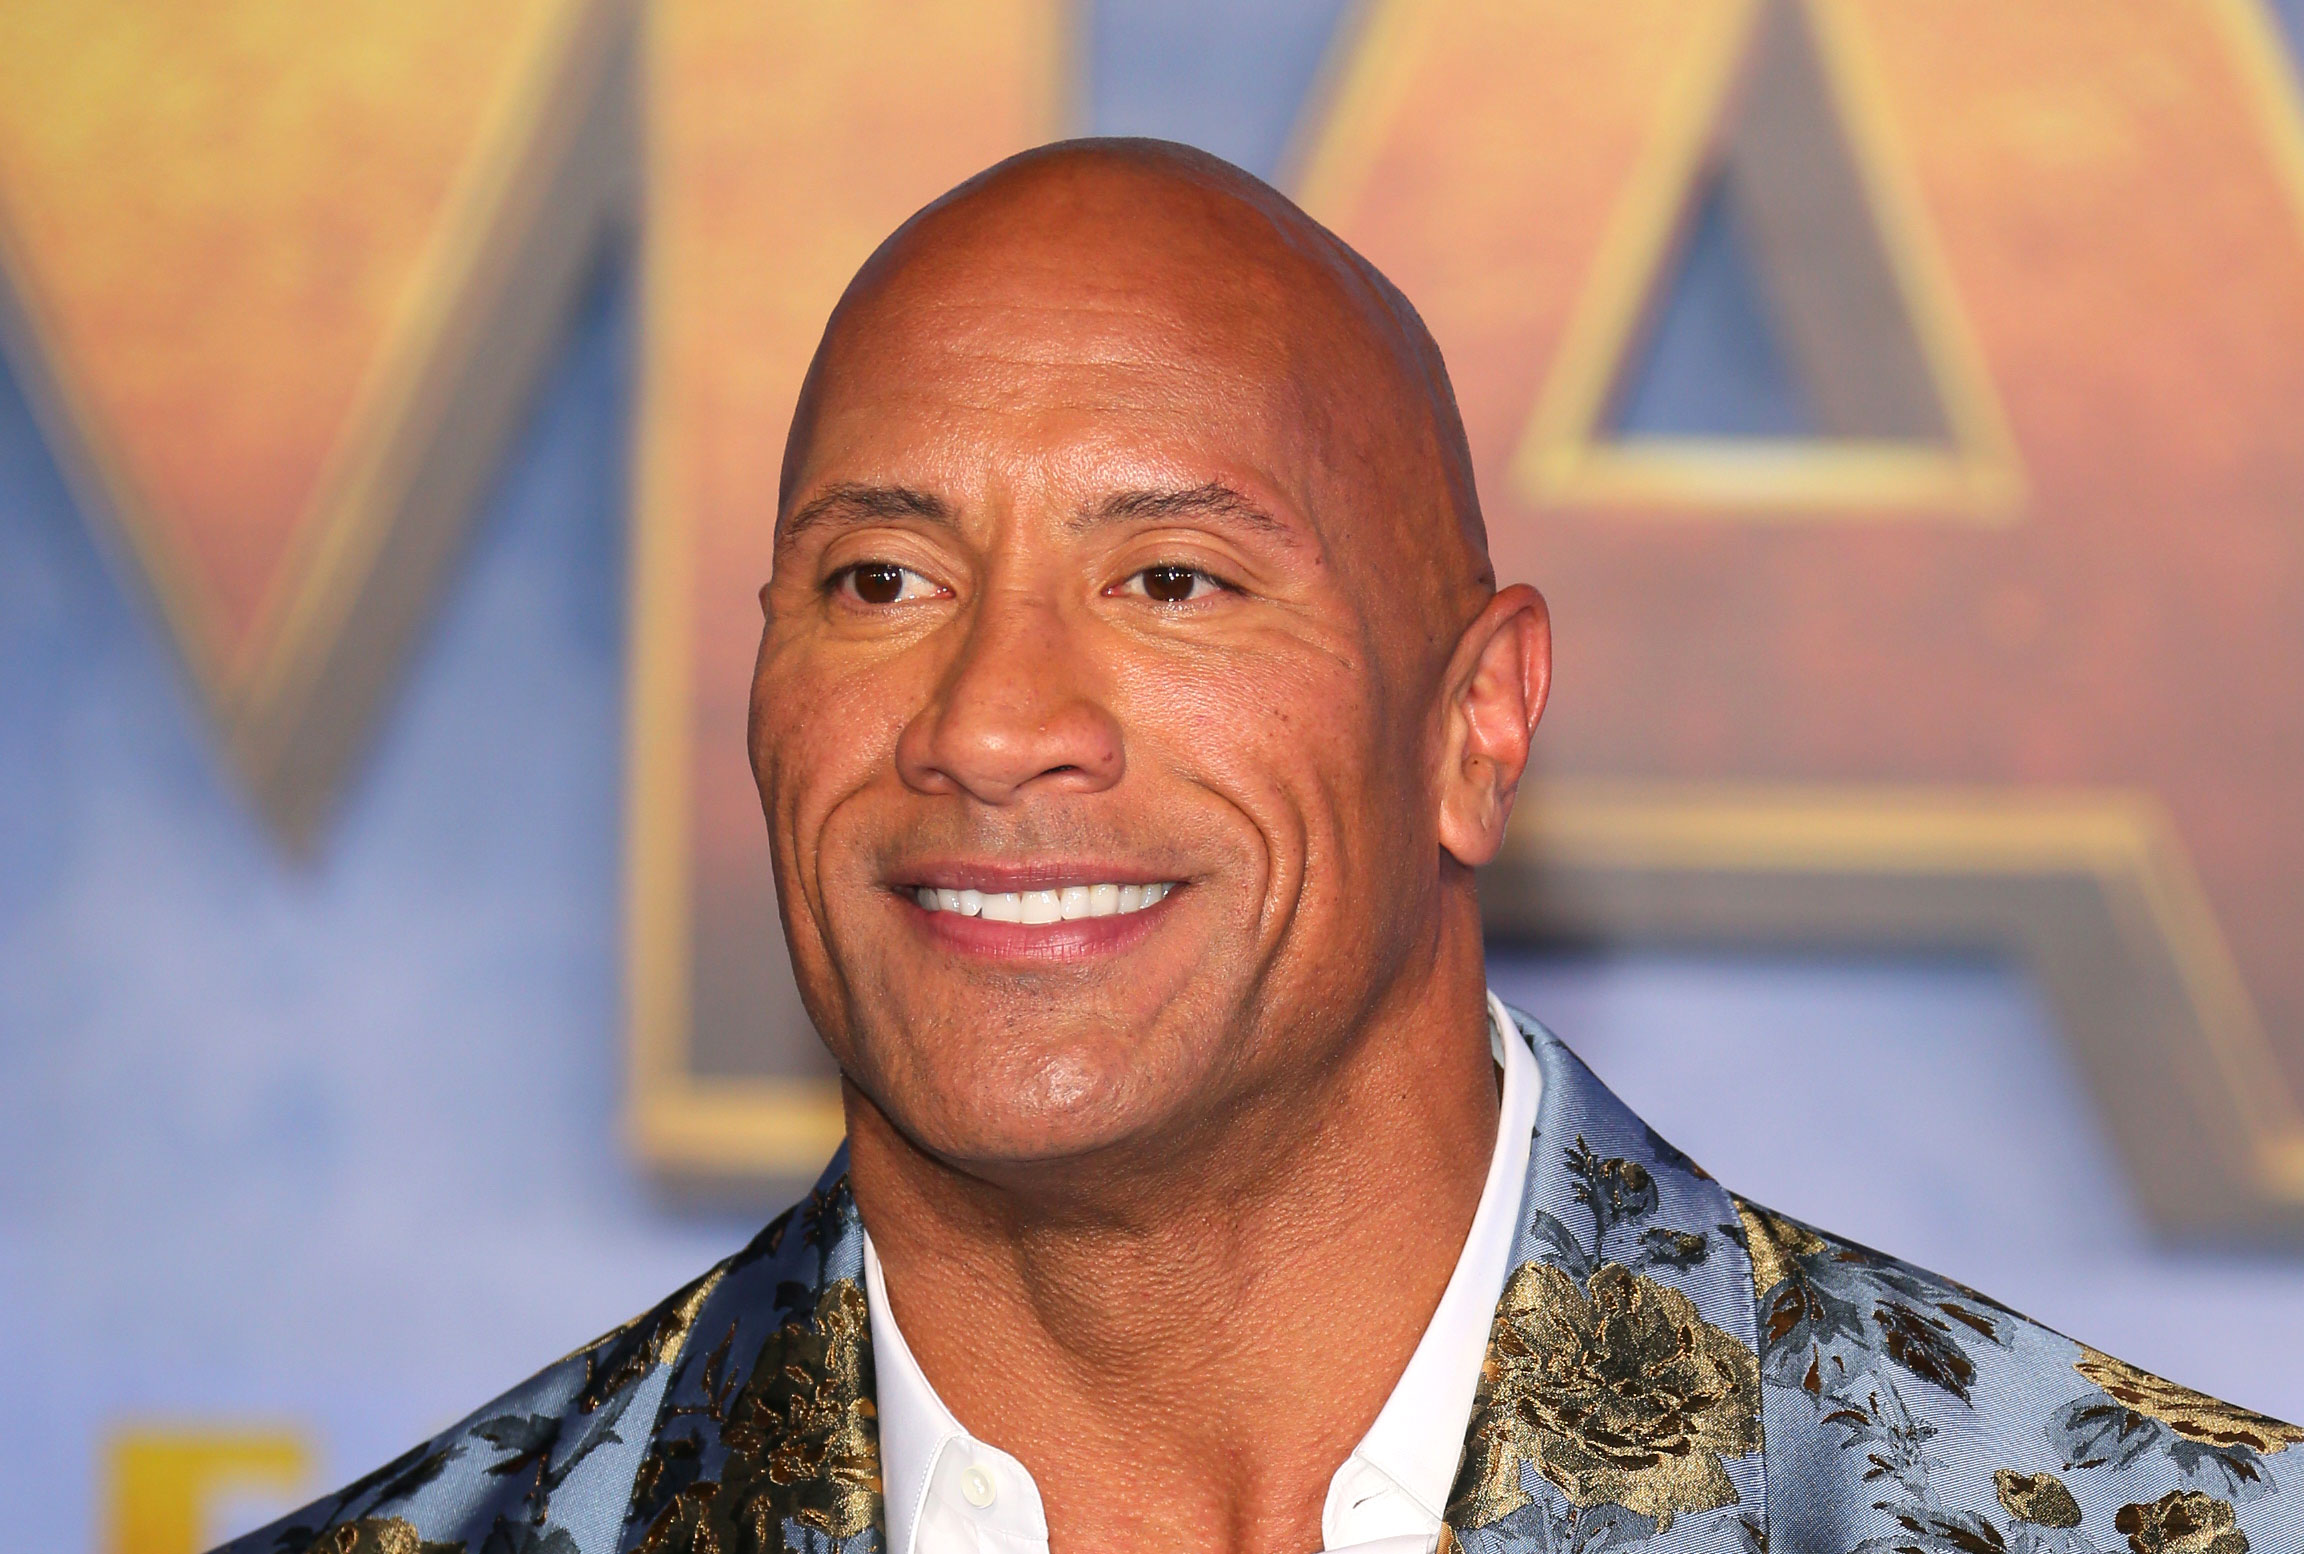 Dwayne Johnson says he and his wife, Lauren Hashian, along with their two young daughters are recovering from Covid-19.